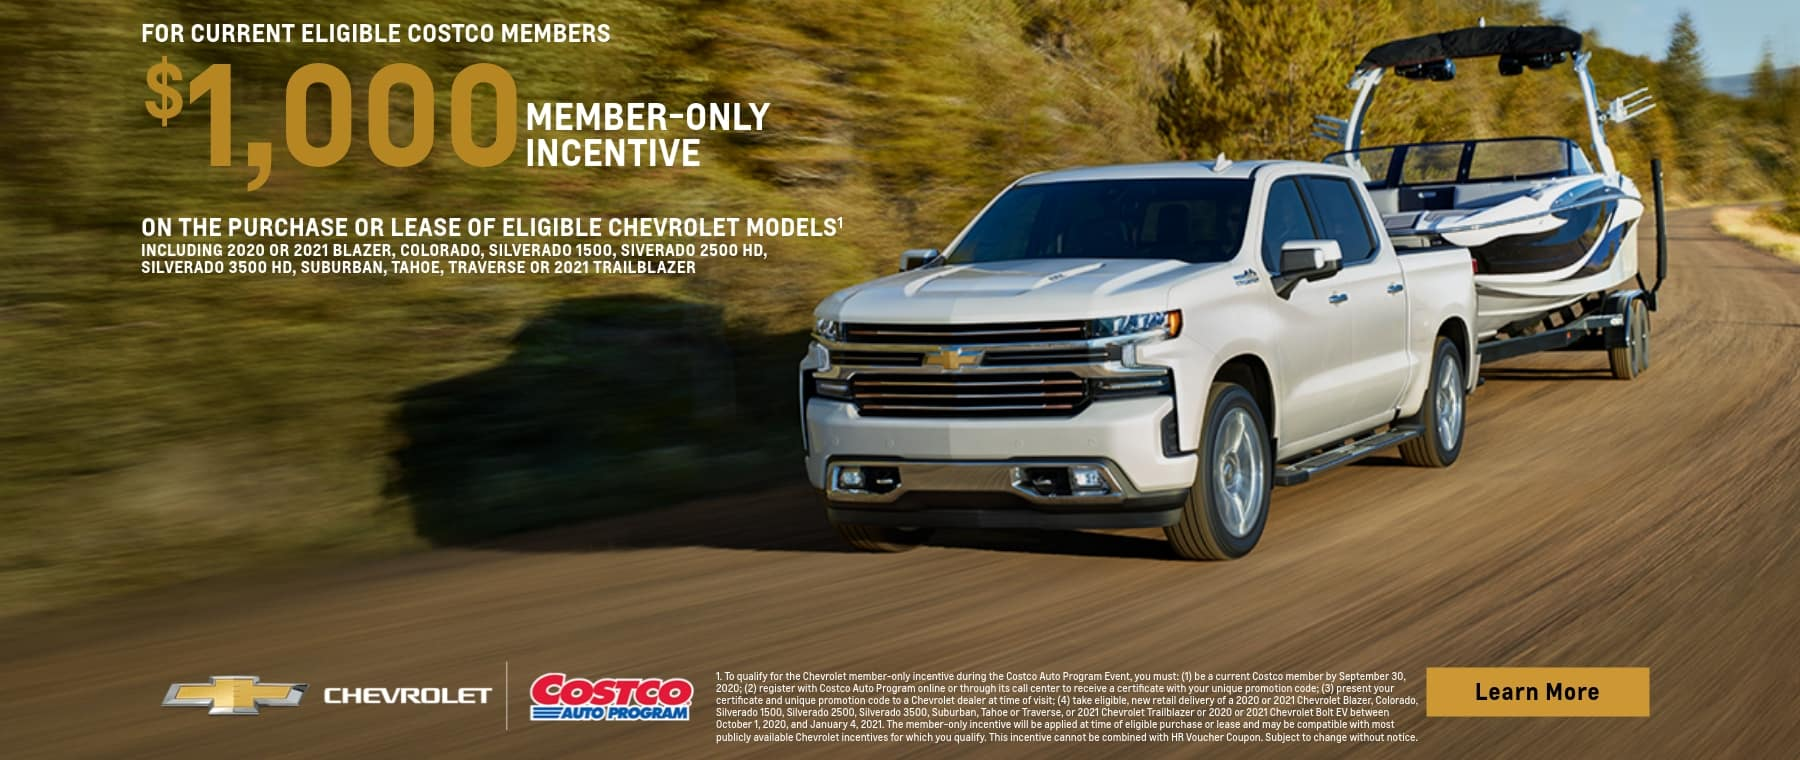 Click here to learn more about Costco Incentive Program